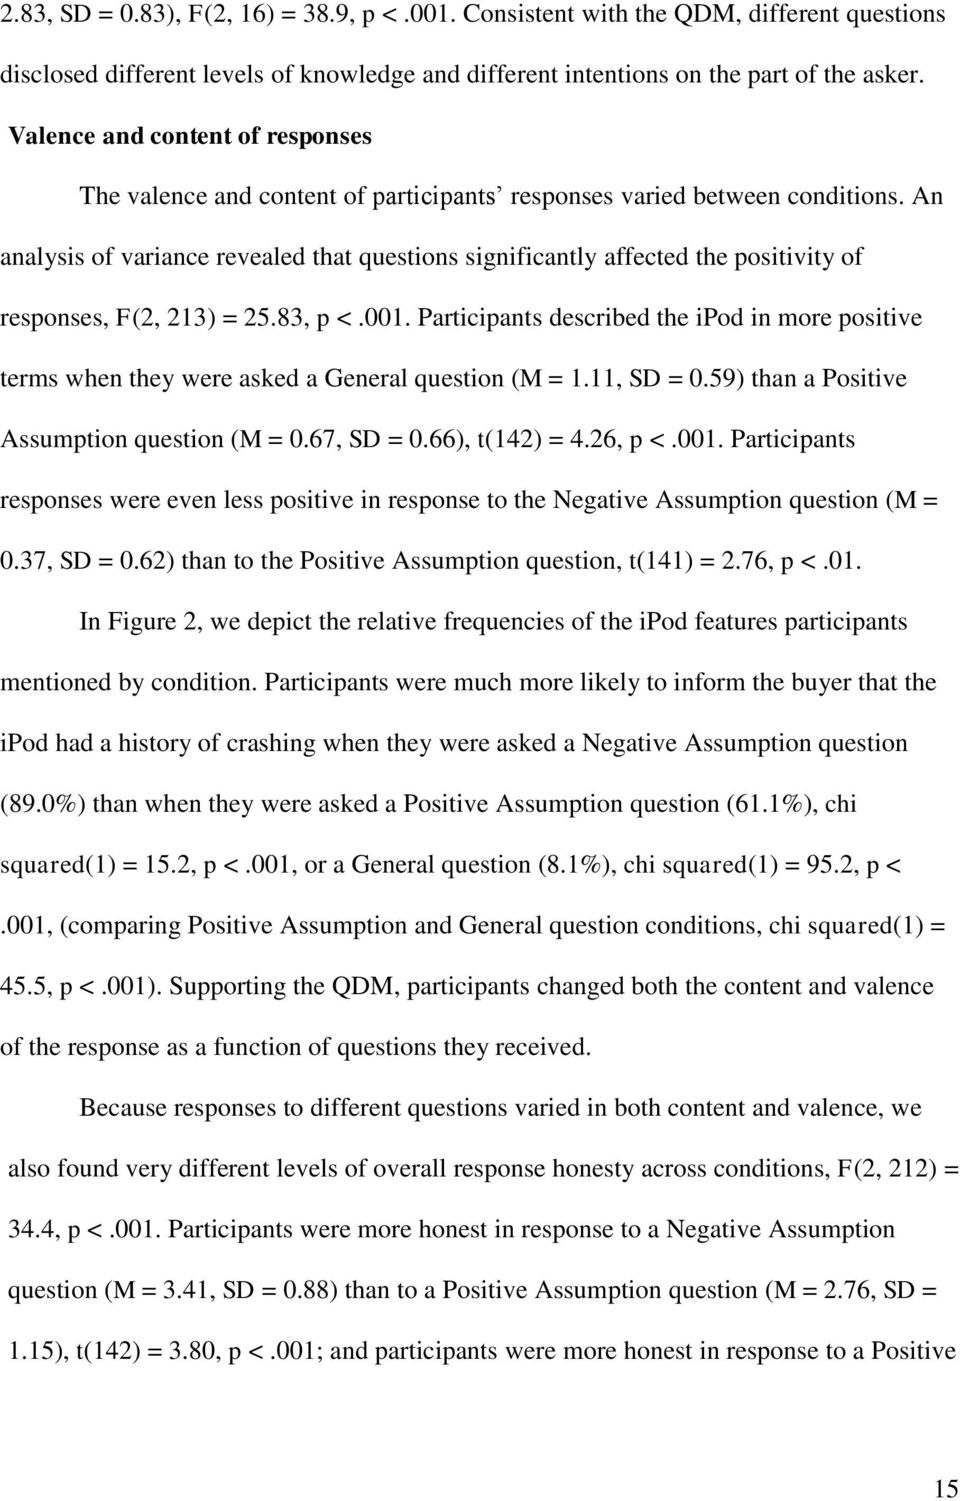 An analysis of variance revealed that questions significantly affected the positivity of responses, F(2, 213) = 25.83, p <.001.